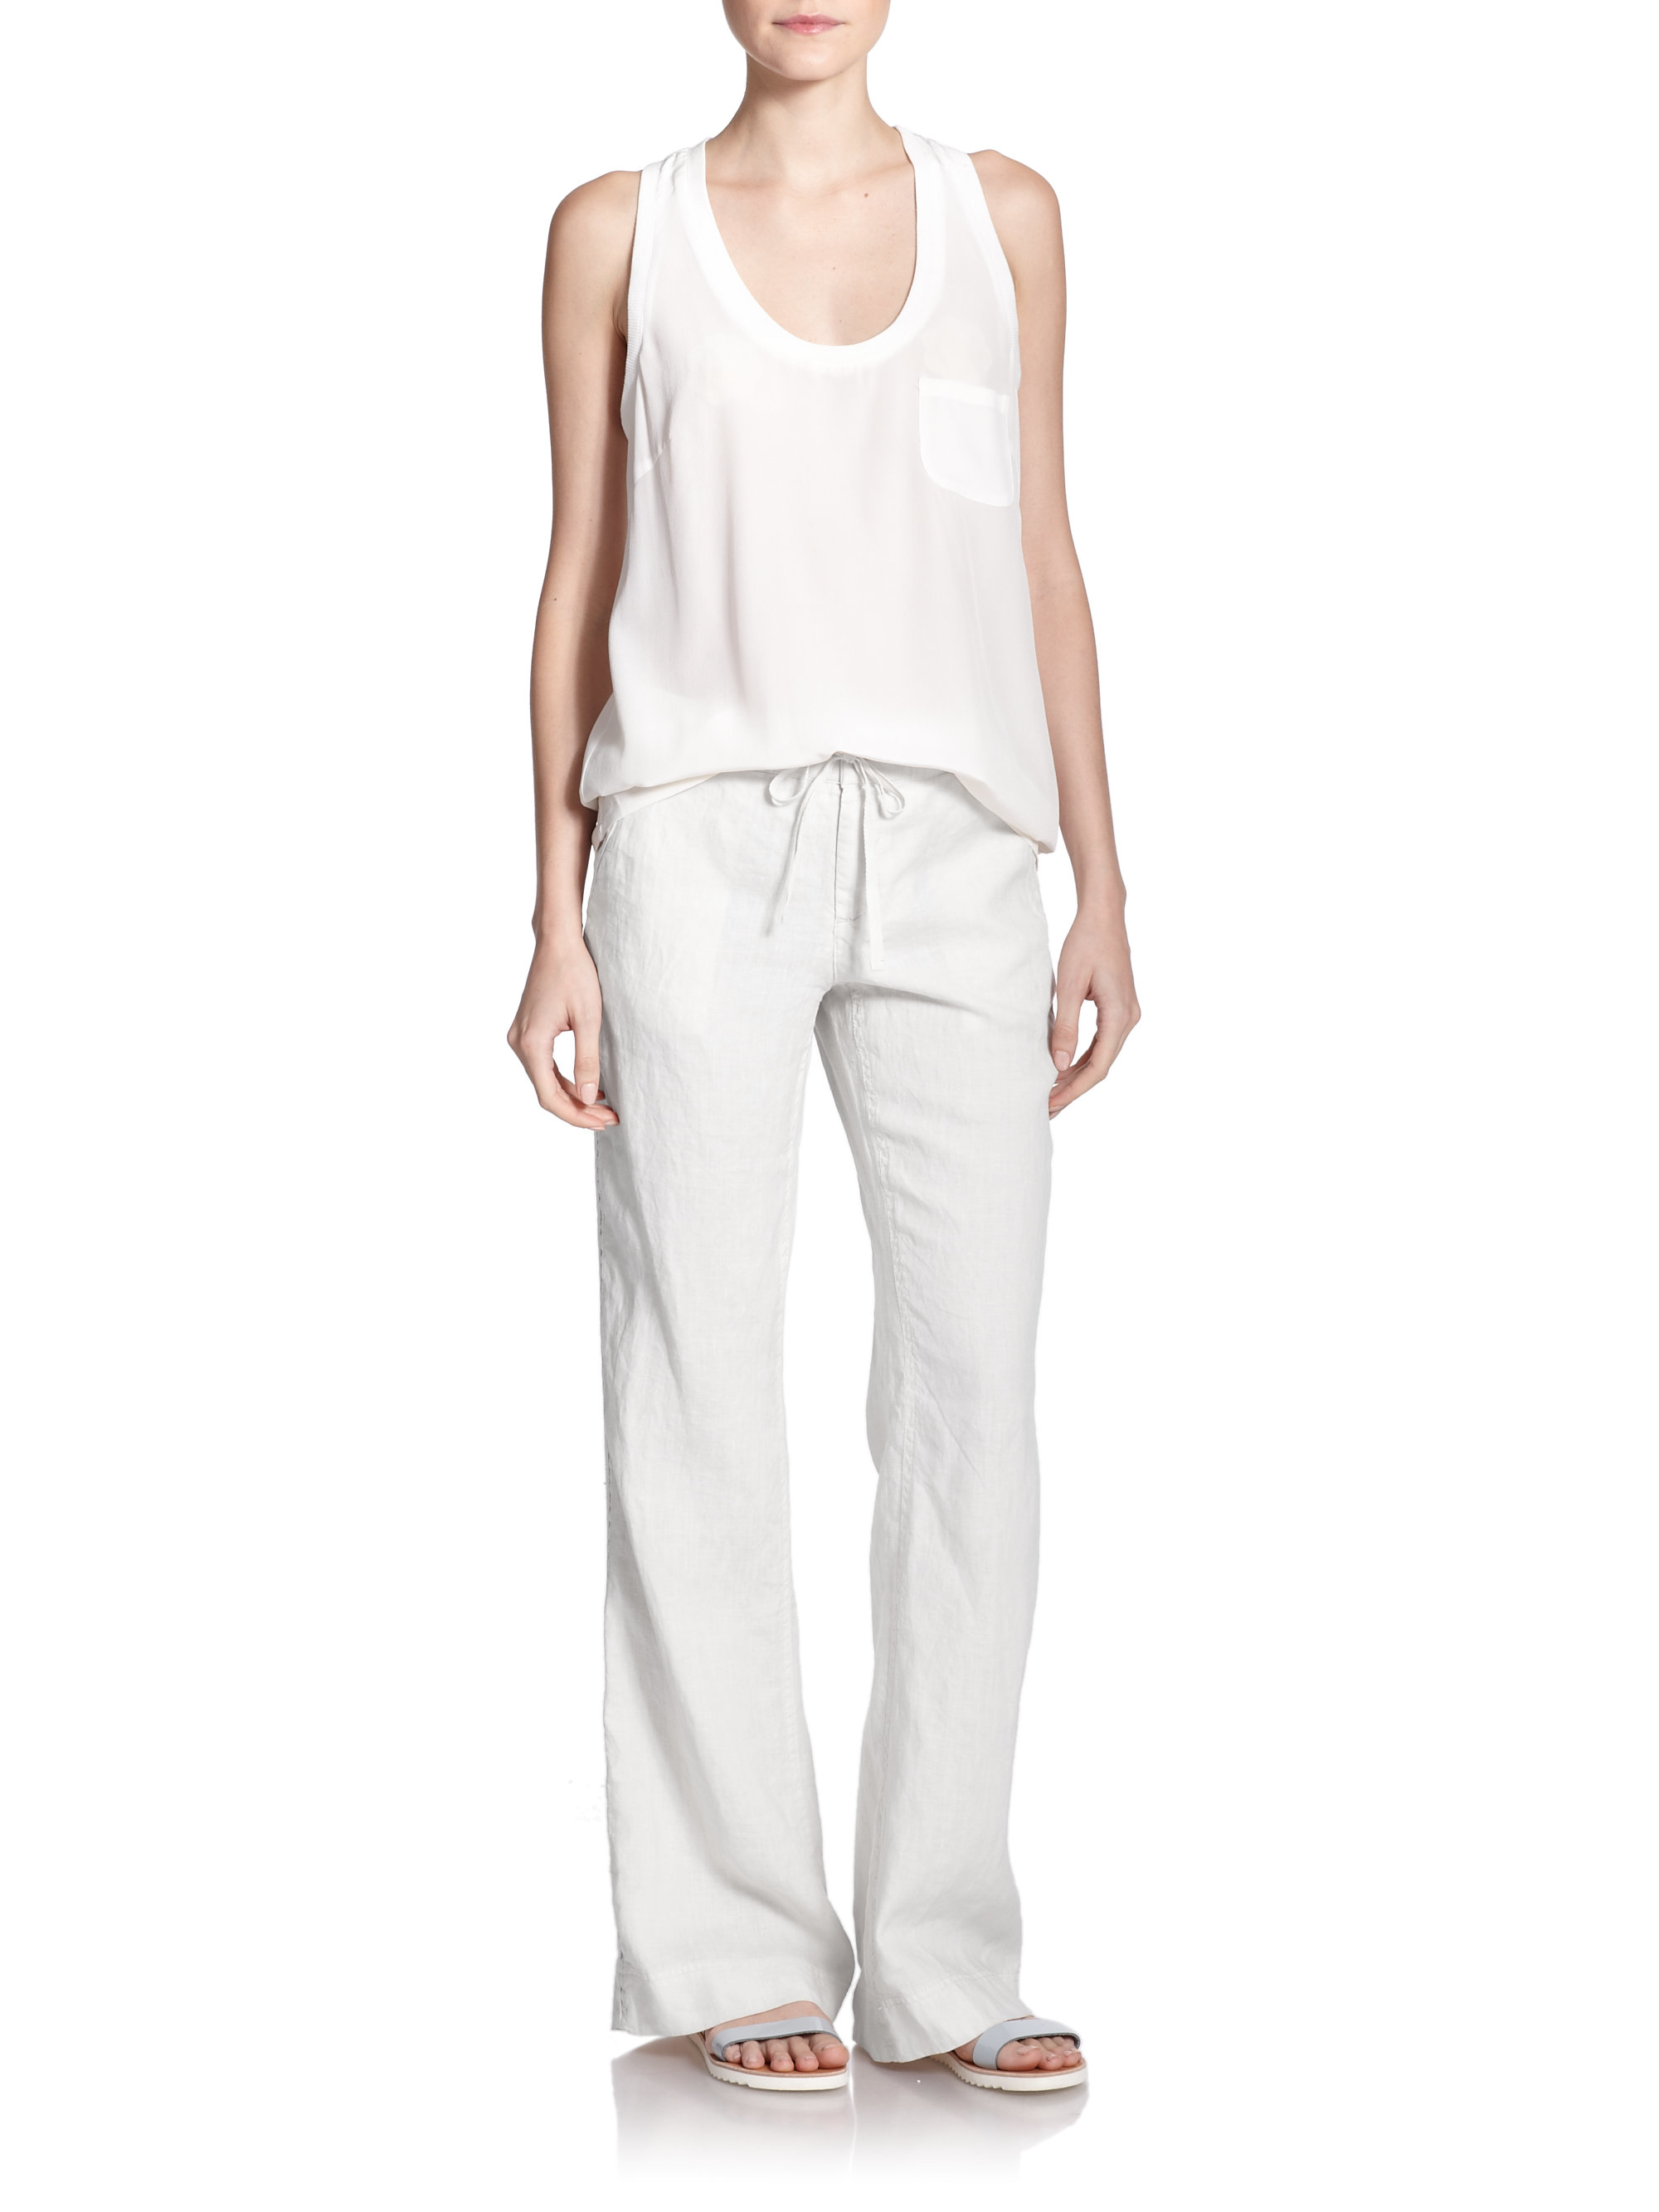 Joie Katriane Wide-leg Linen Pants in White | Lyst